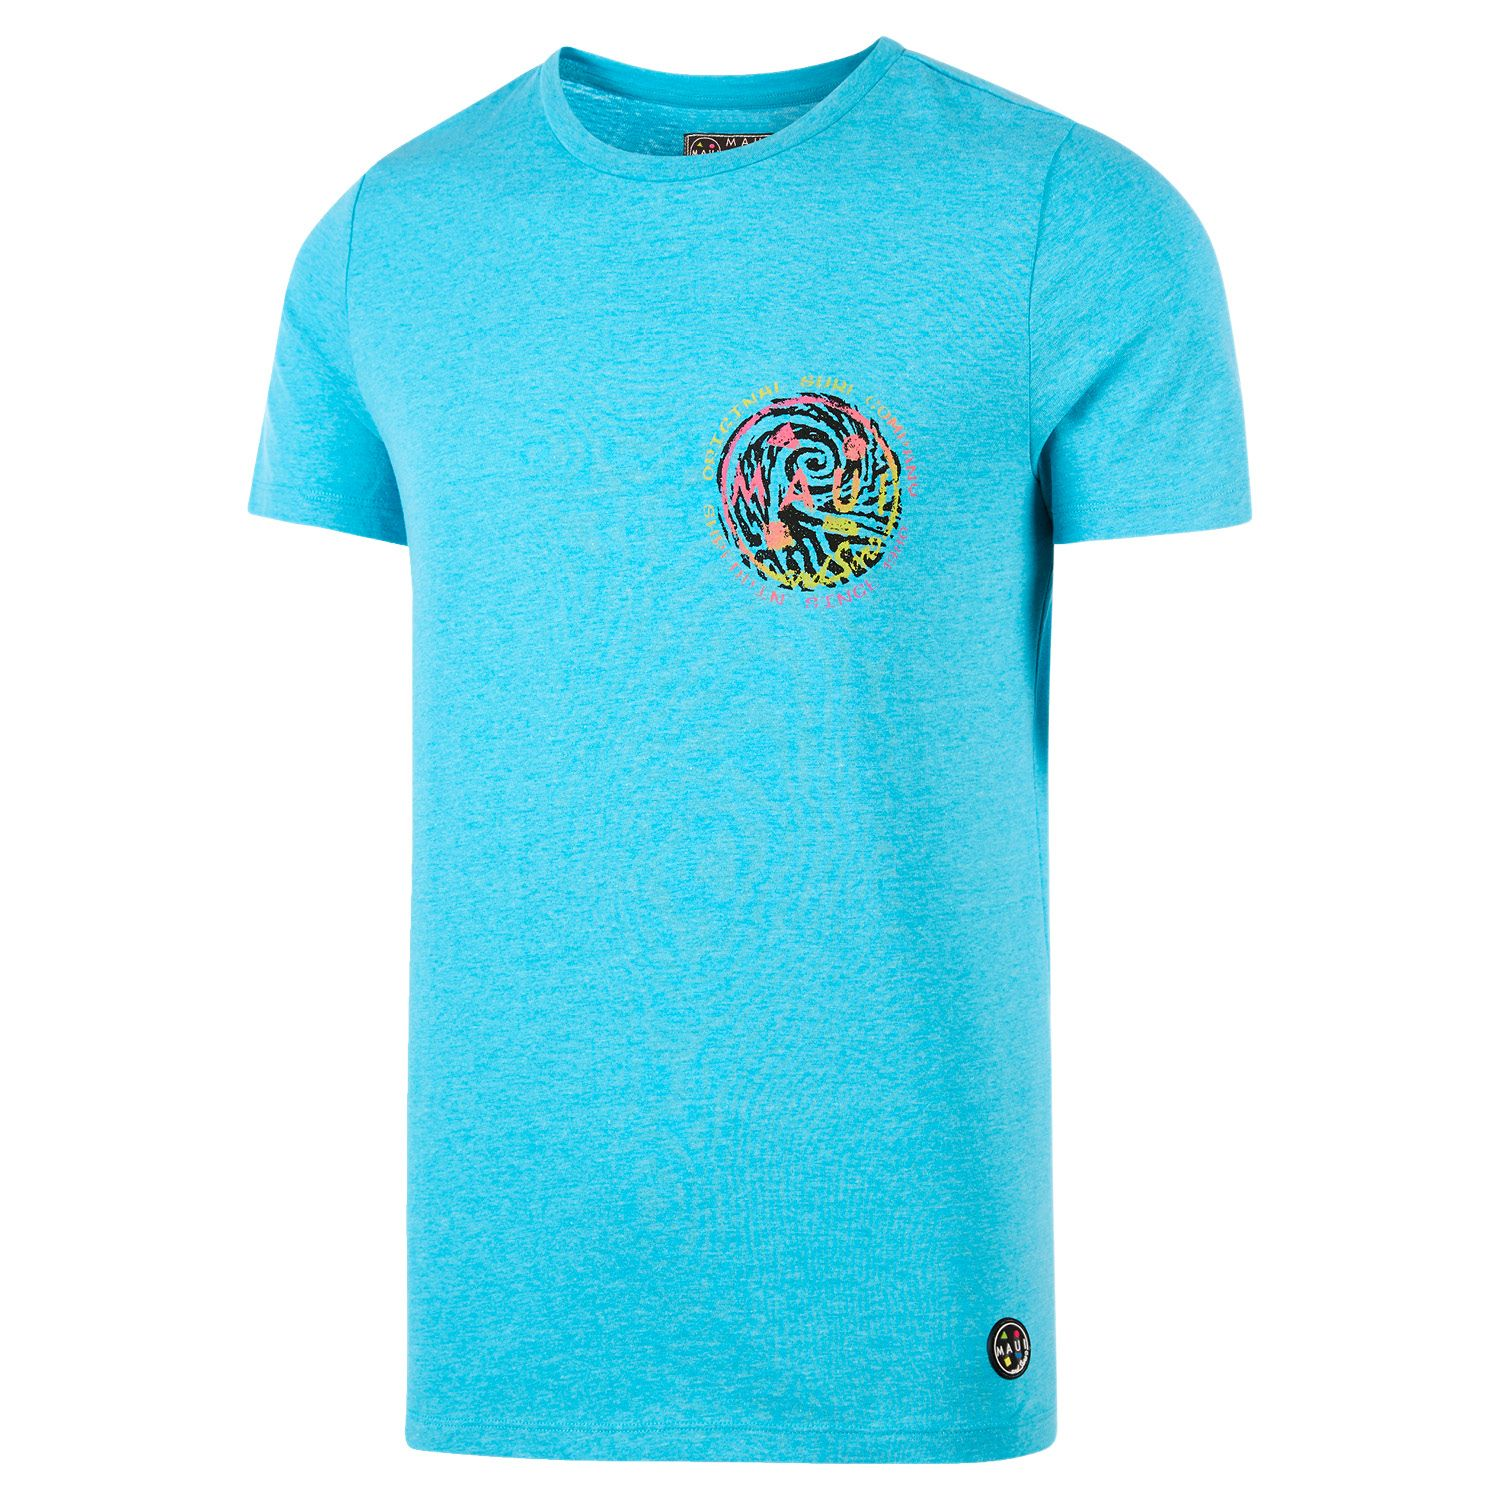 Maui and Sons® Shirt/Top*